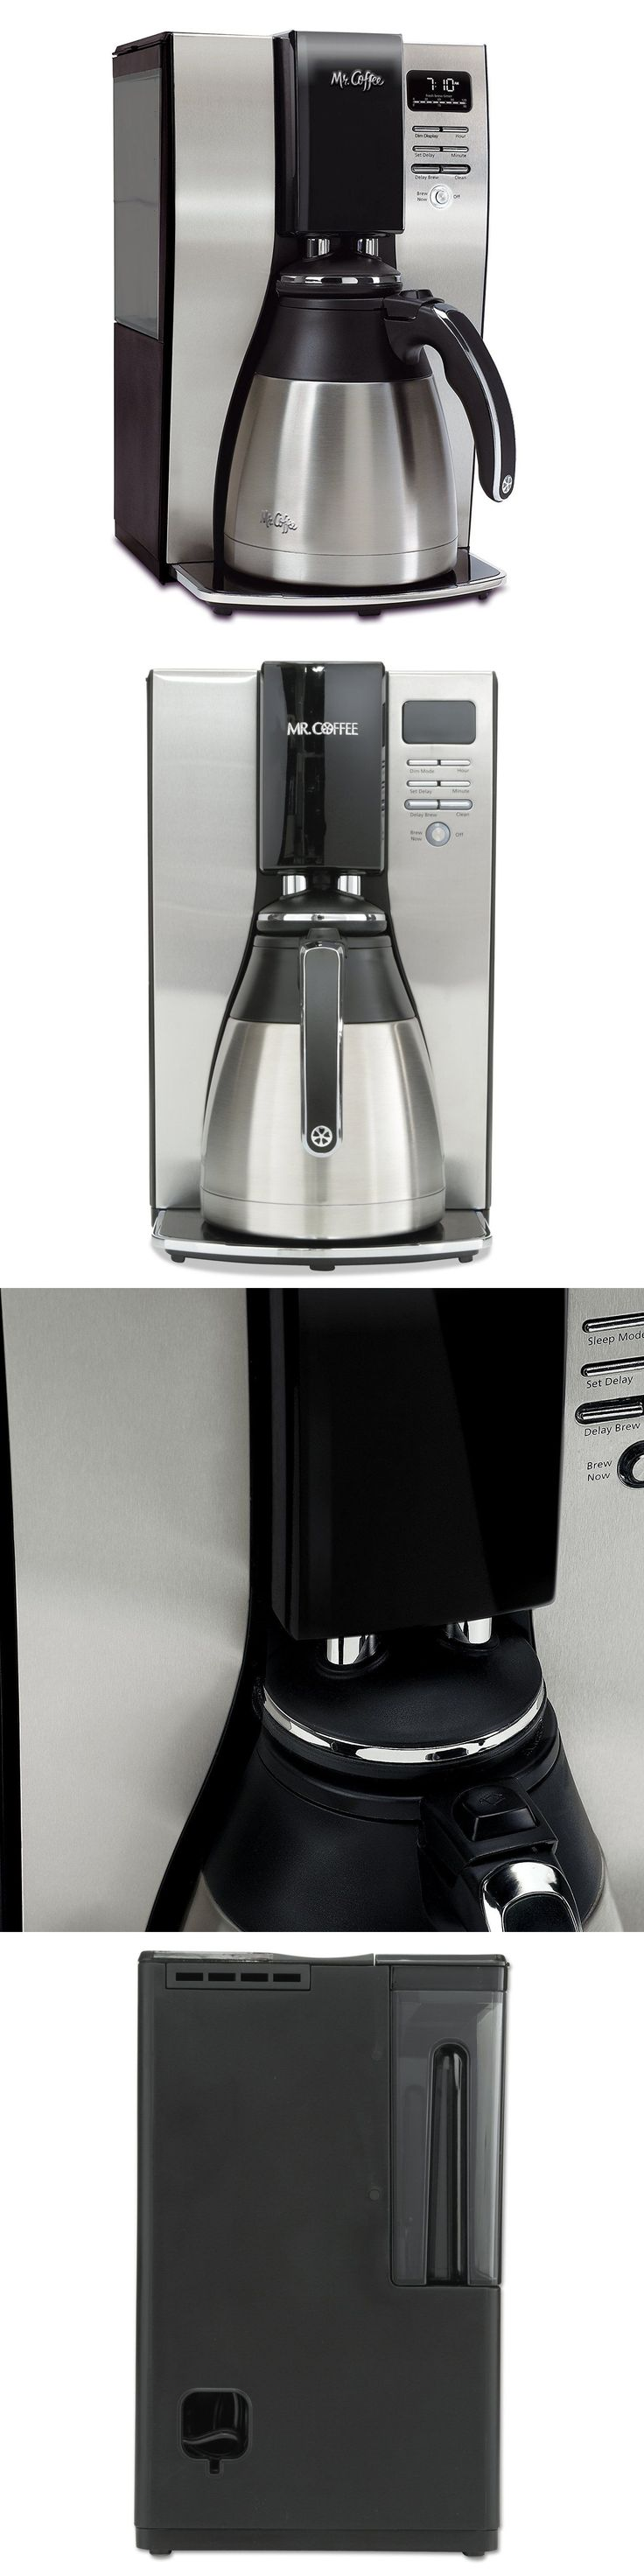 Small Kitchen Appliances: Mr. Coffee - 10-Cup Coffeemaker - Stainless-Steel Black -> BUY IT NOW ONLY: $48.99 on eBay!